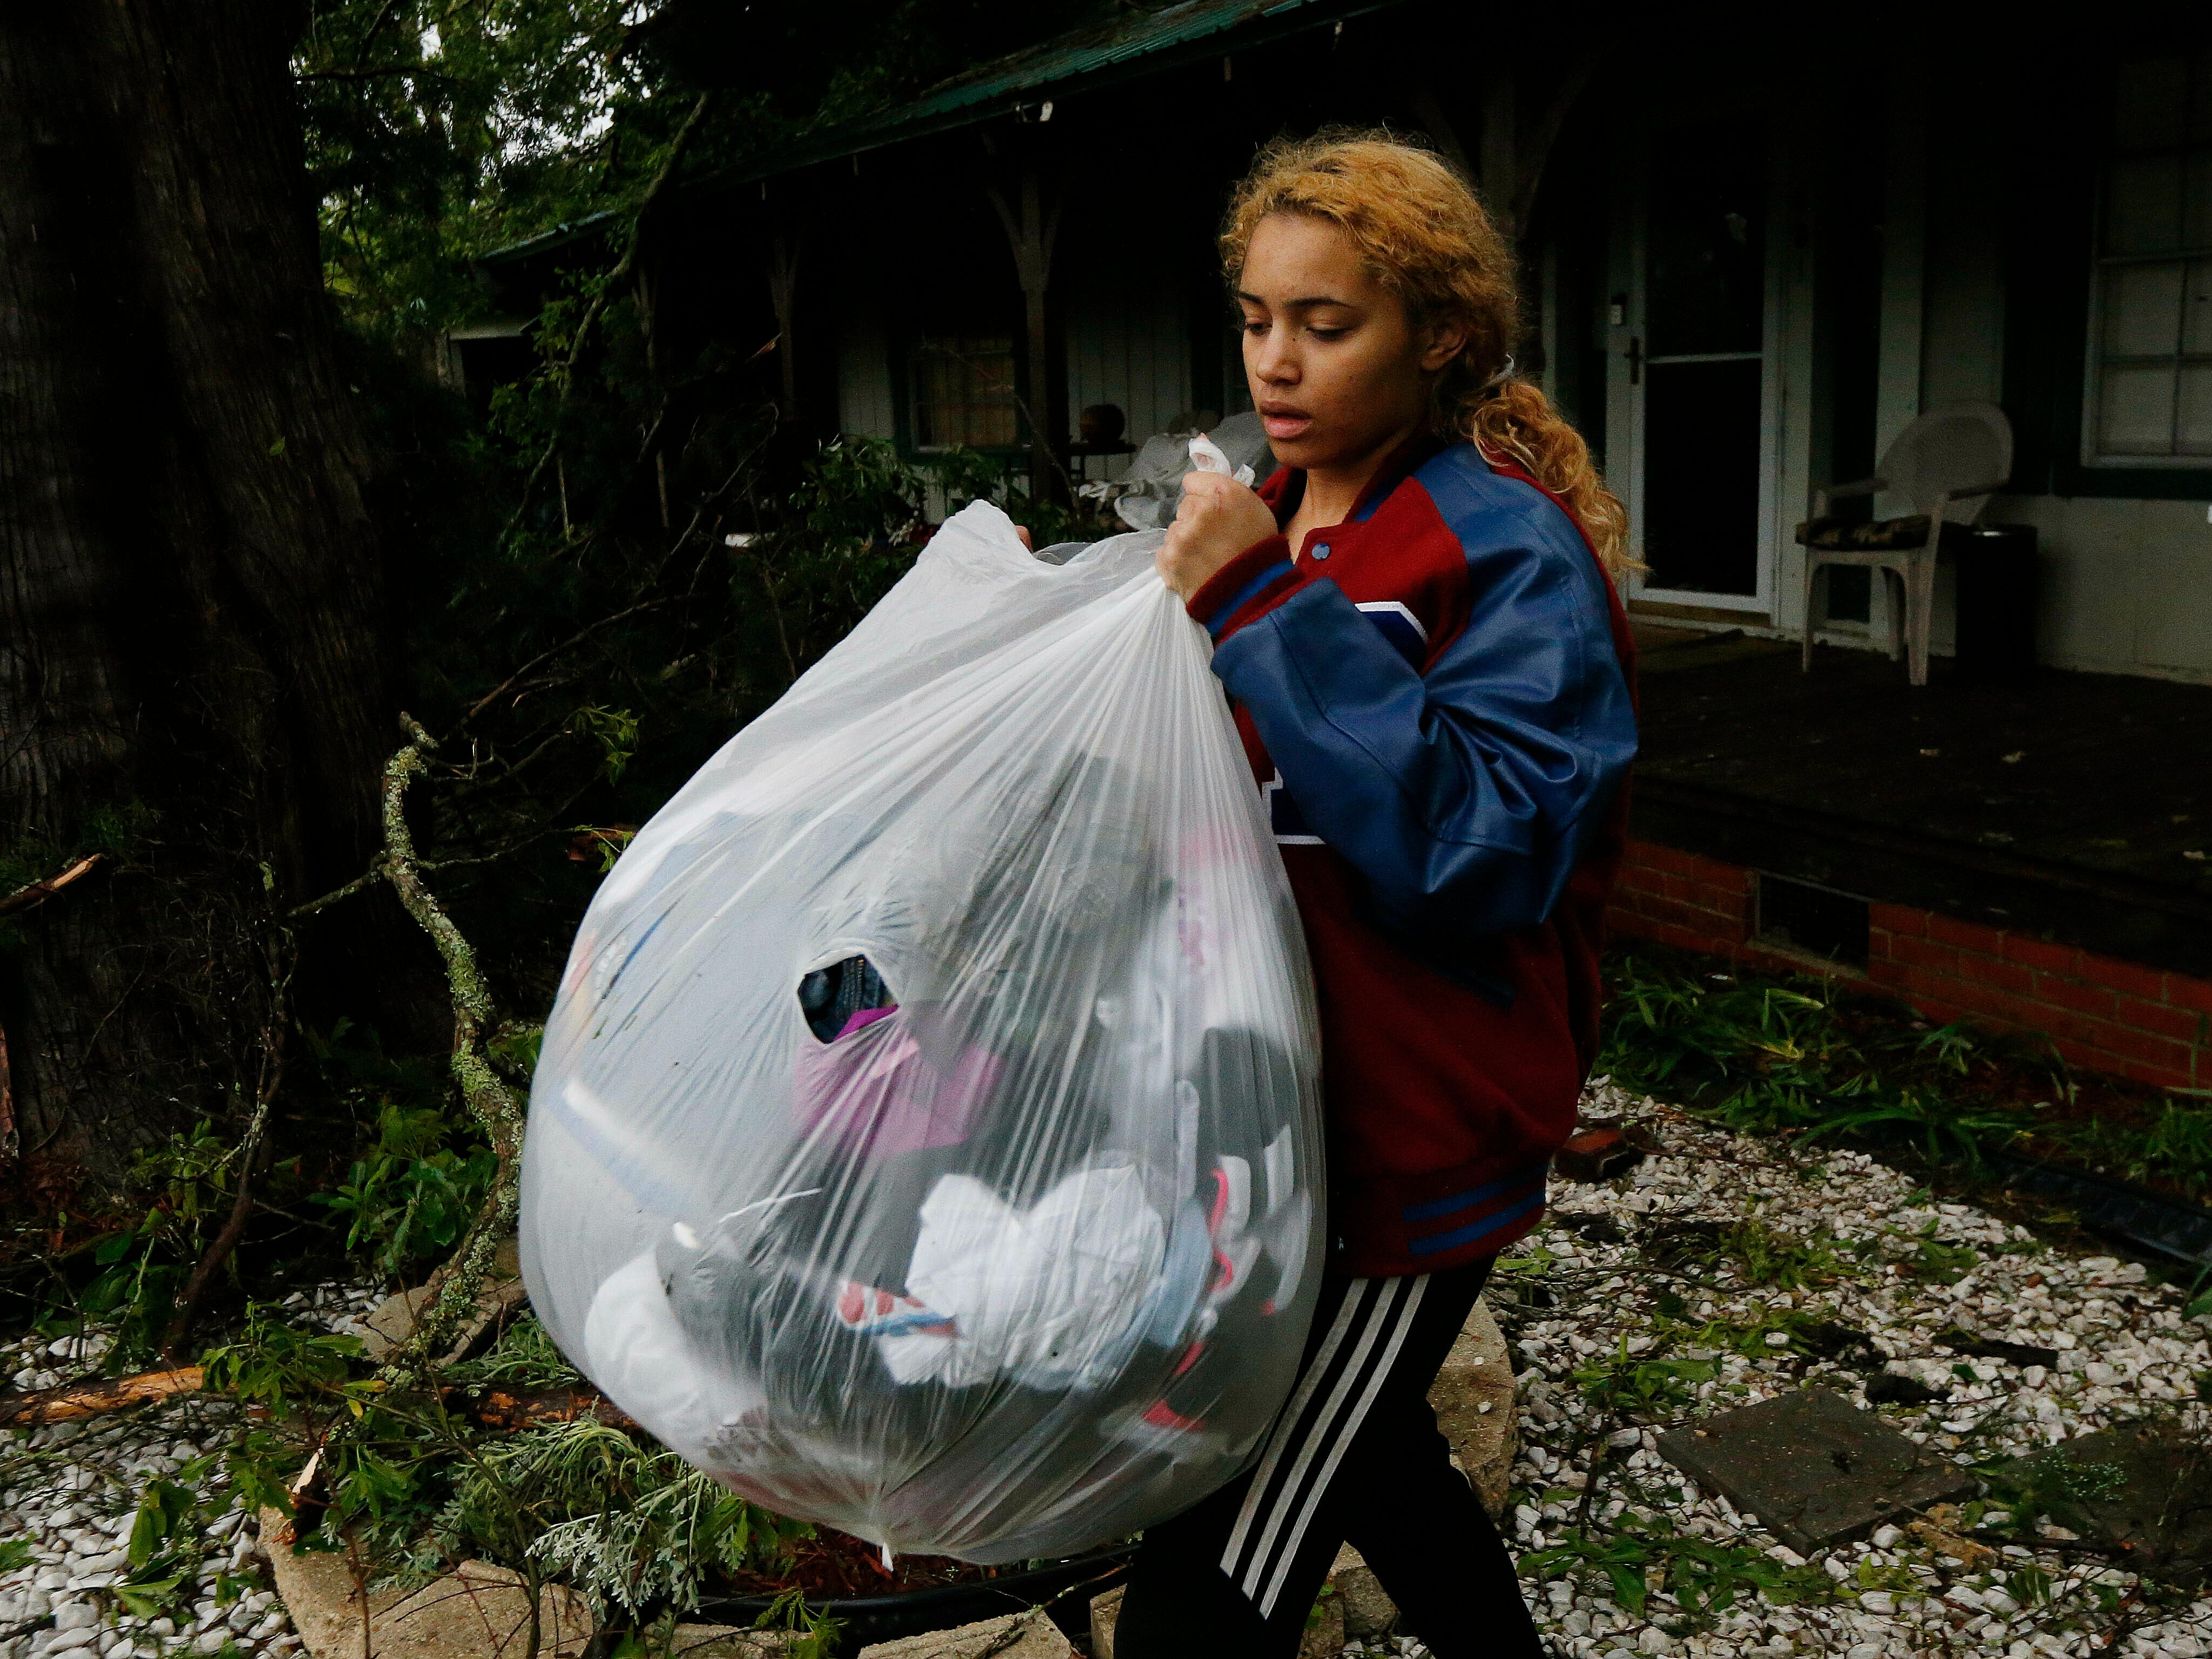 Hannah Claire carries out the unsoiled clothes of her friend Jacqualynn Qualls whose house was severely damaged by a fallen tree following severe weather that hit the small community of Learned, Miss., Thursday, April 18, 2019. Several homes were damaged by fallen trees in the tree lined community.